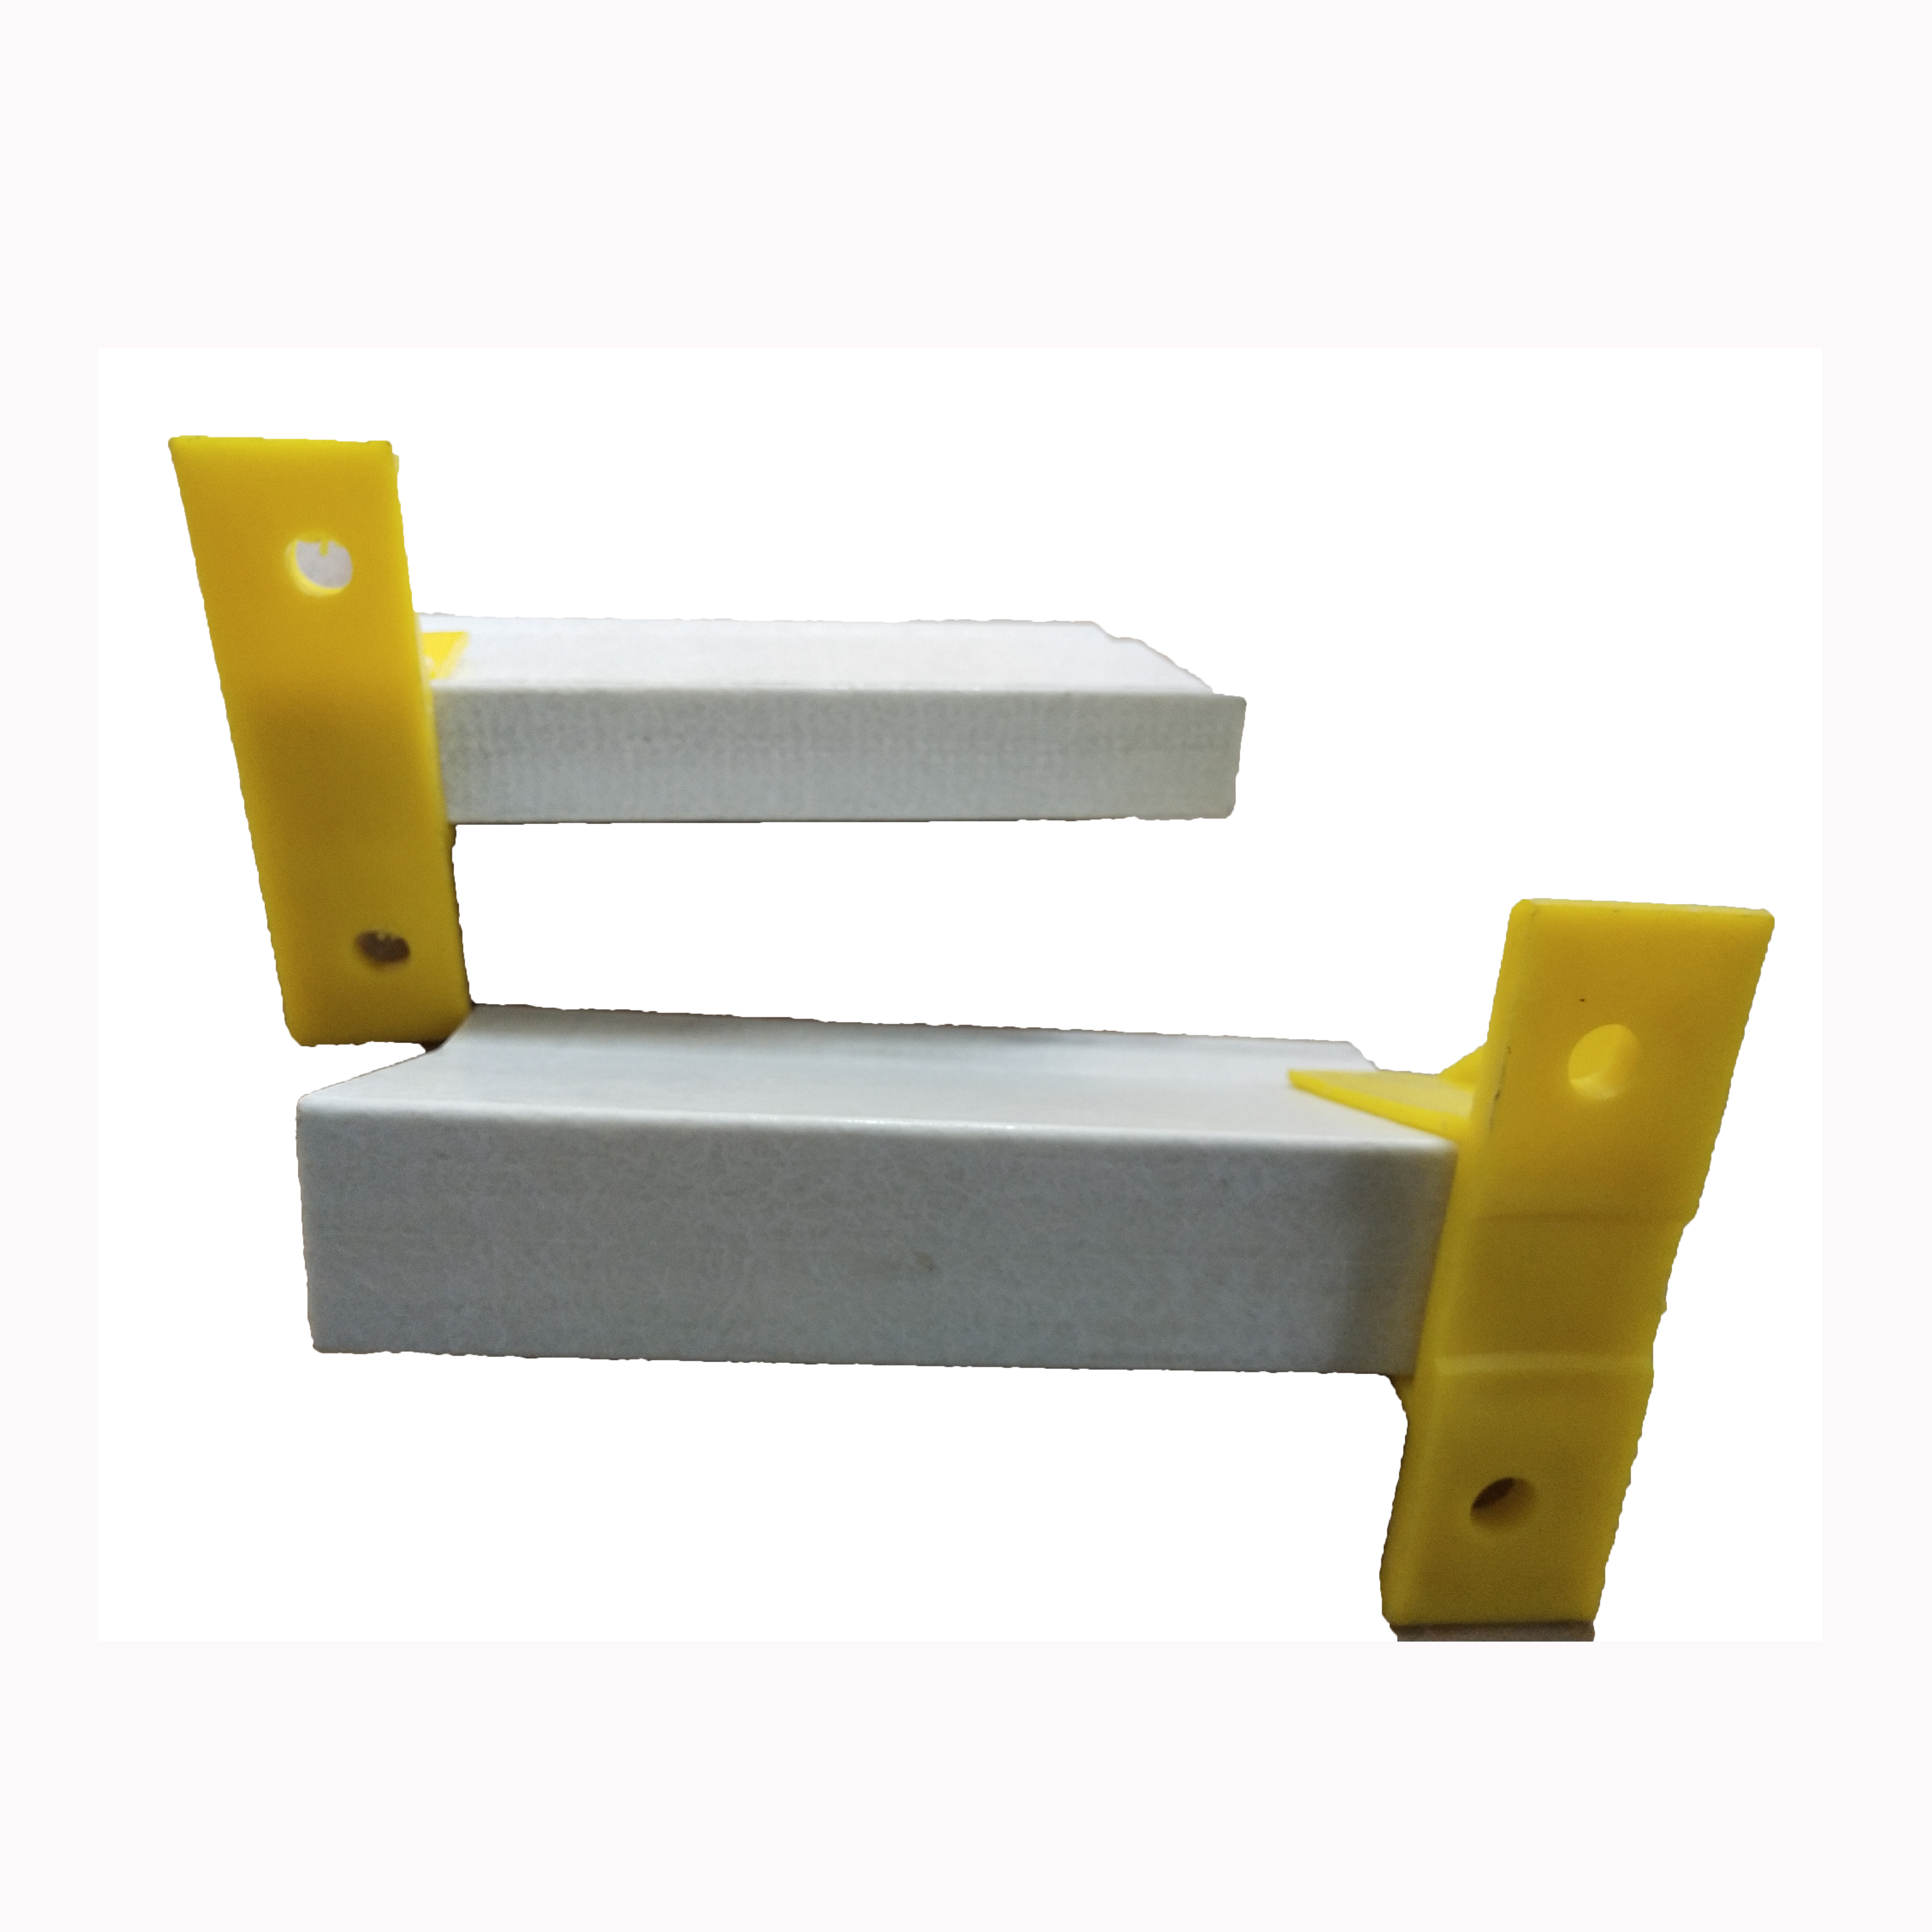 Fiberglass plastic floor beams are ideal substitutes for steel beams